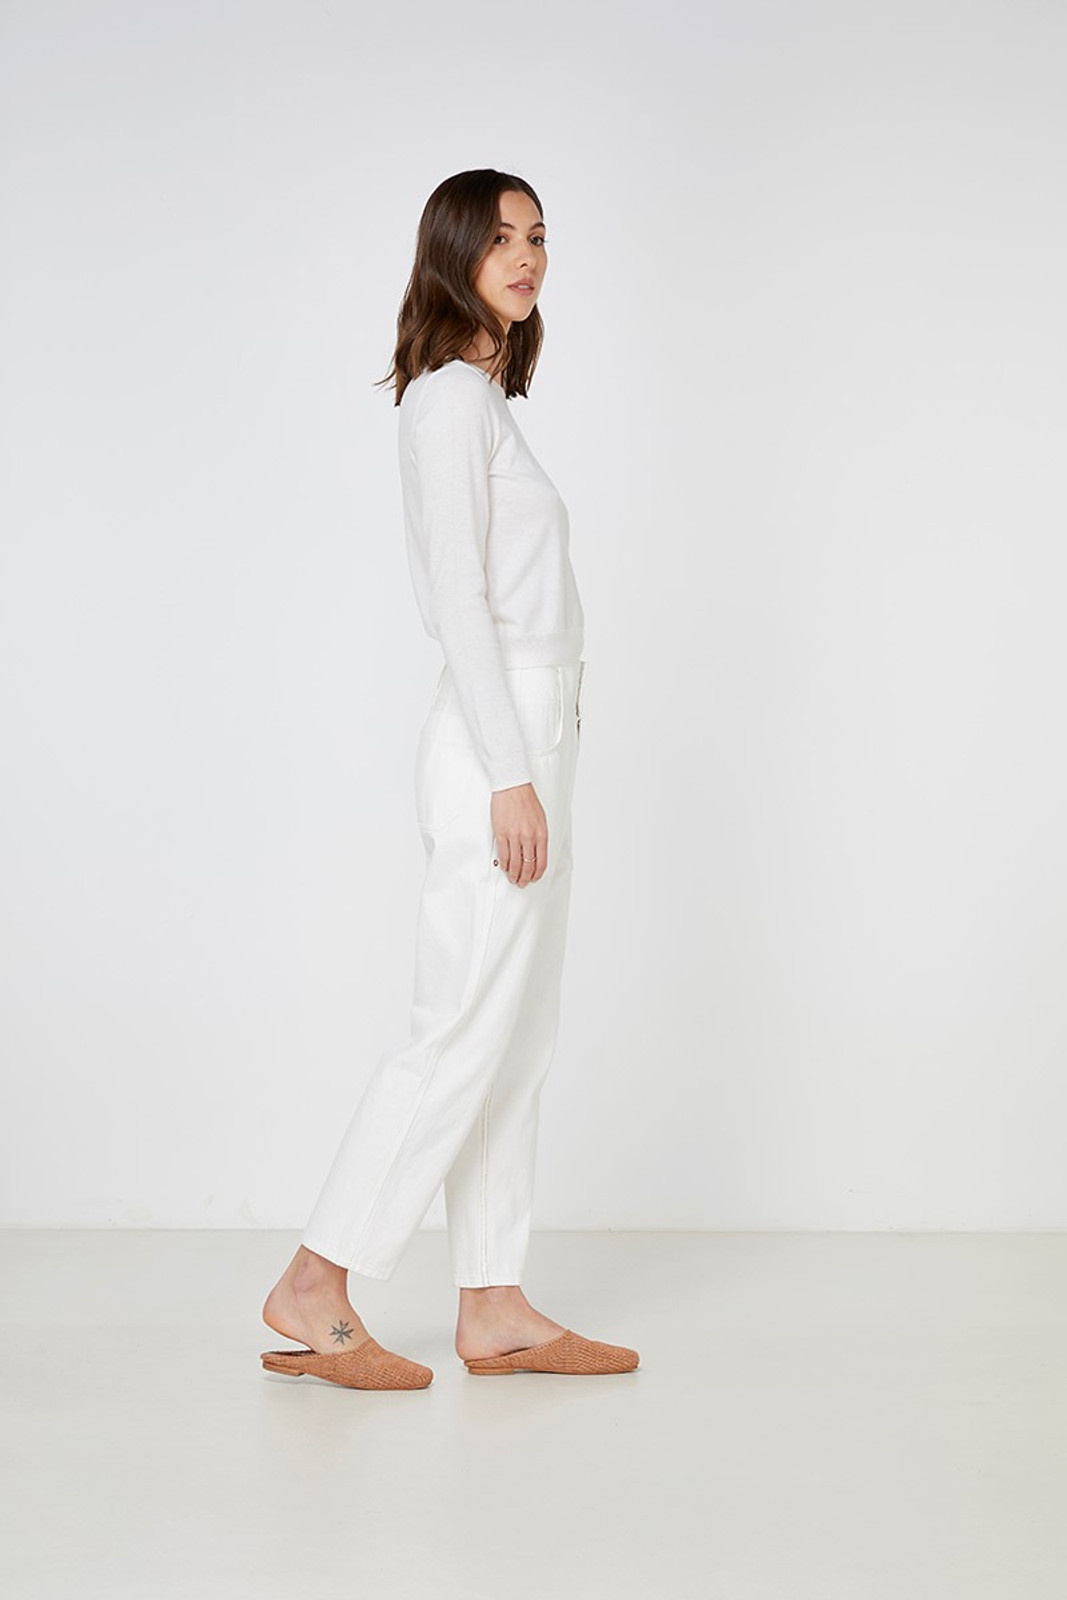 Elka Collective Gale Knit White  8